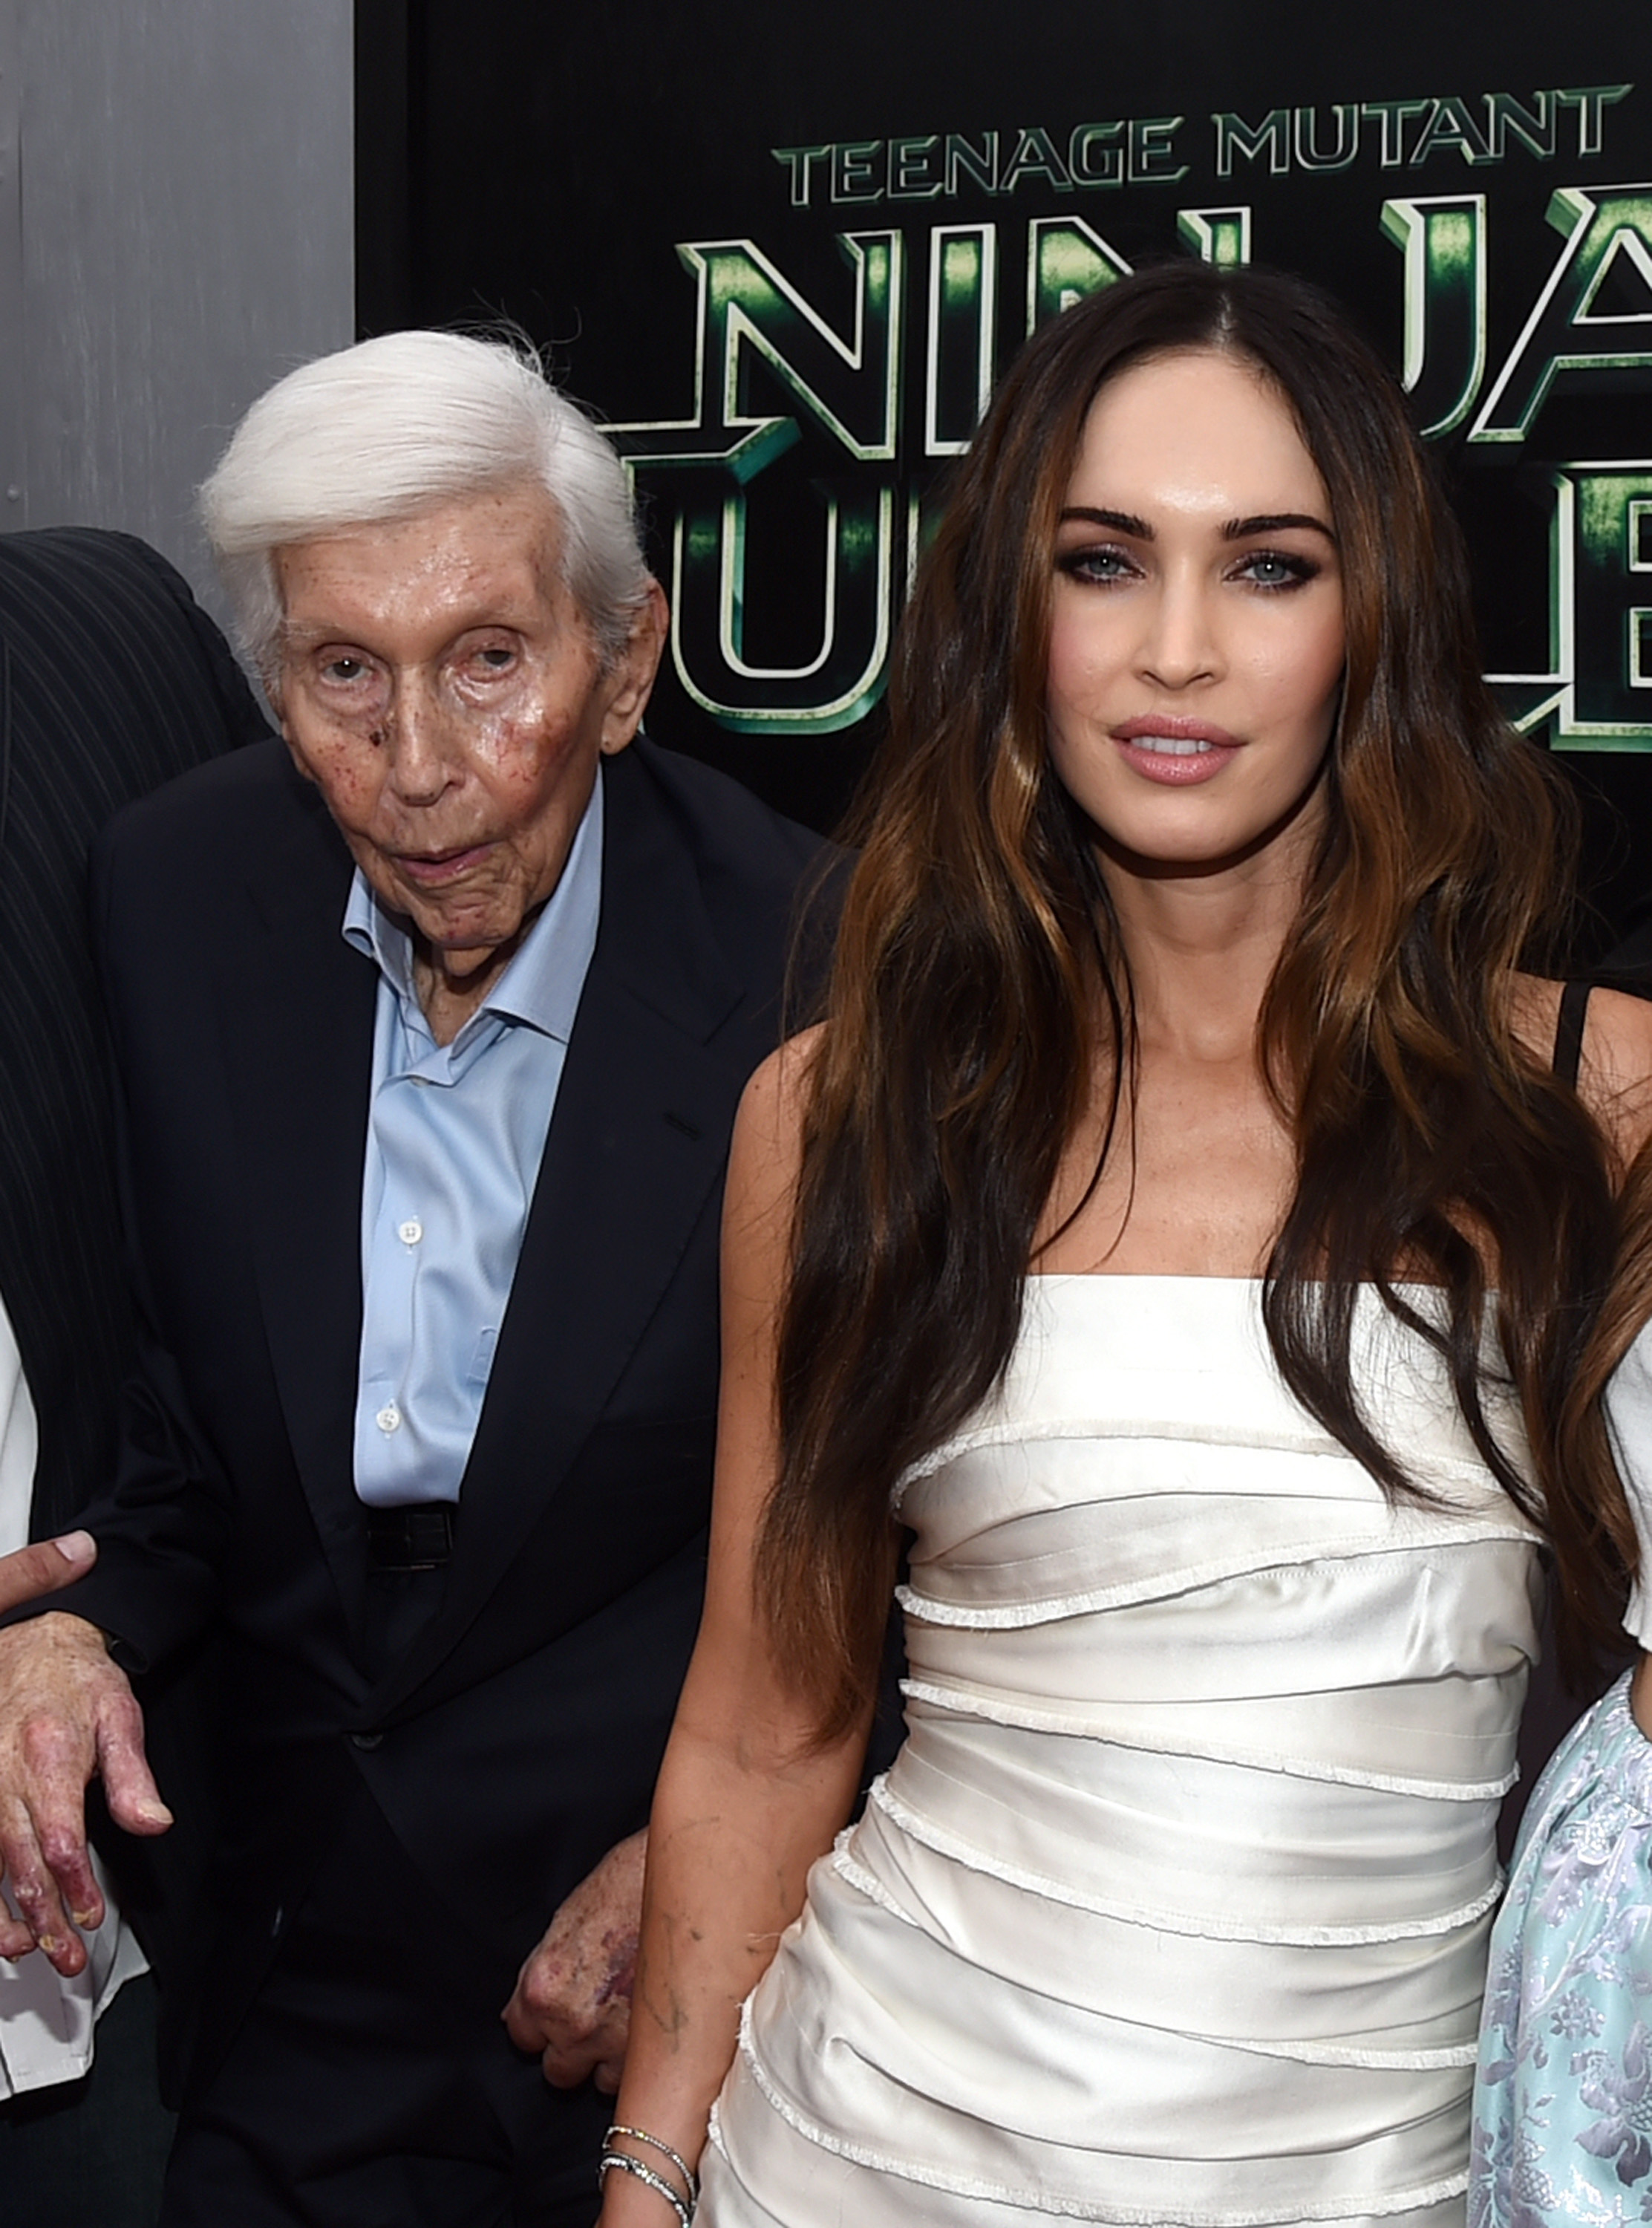 Sumner Redstone, left, is still enjoying himself. Photo by Michael Buckner/WireImage / Getty Images